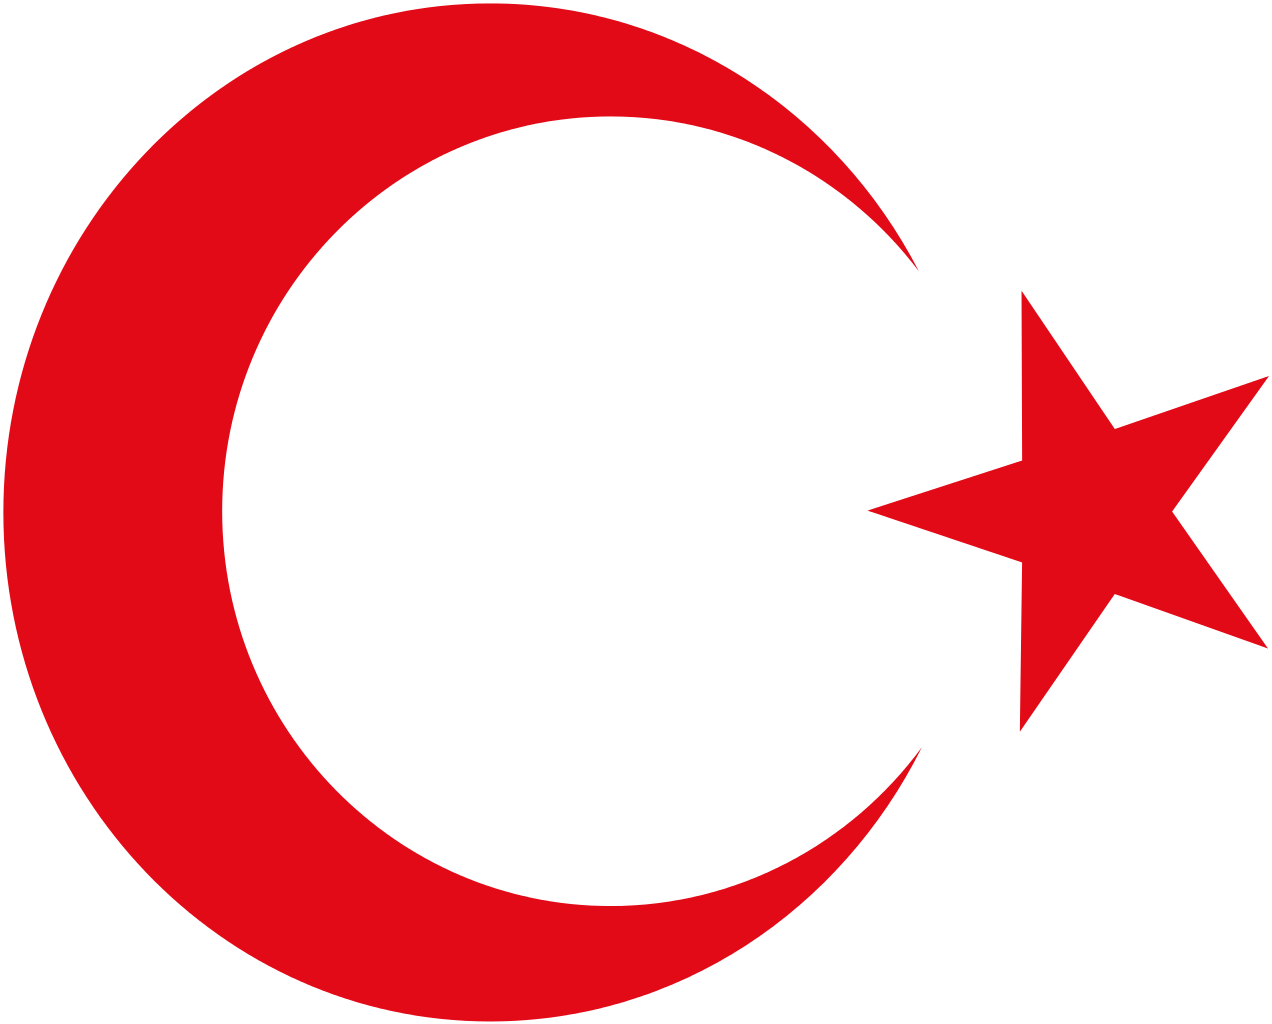 Crescent clipart islam. Moon and star pictures